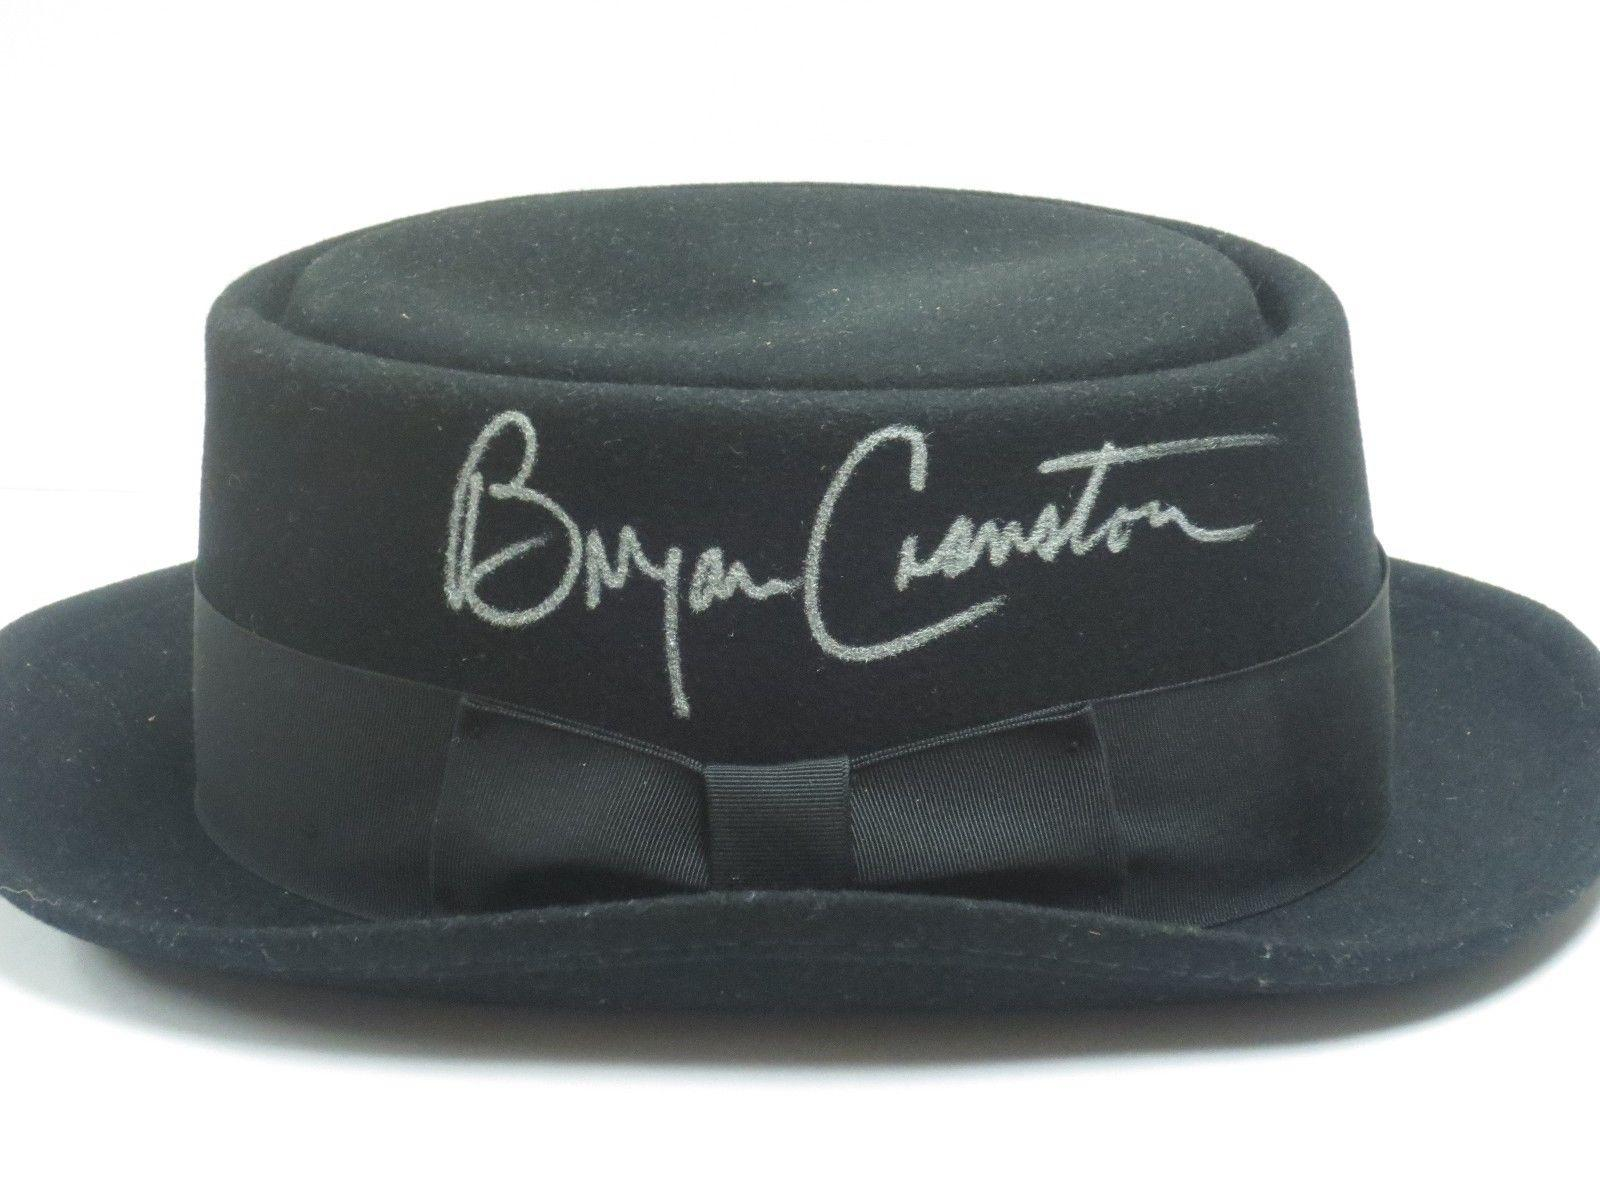 Bryan Cranston Signed Official Heisenberg Hat Autograph Exact Proof Psa/dna Coa